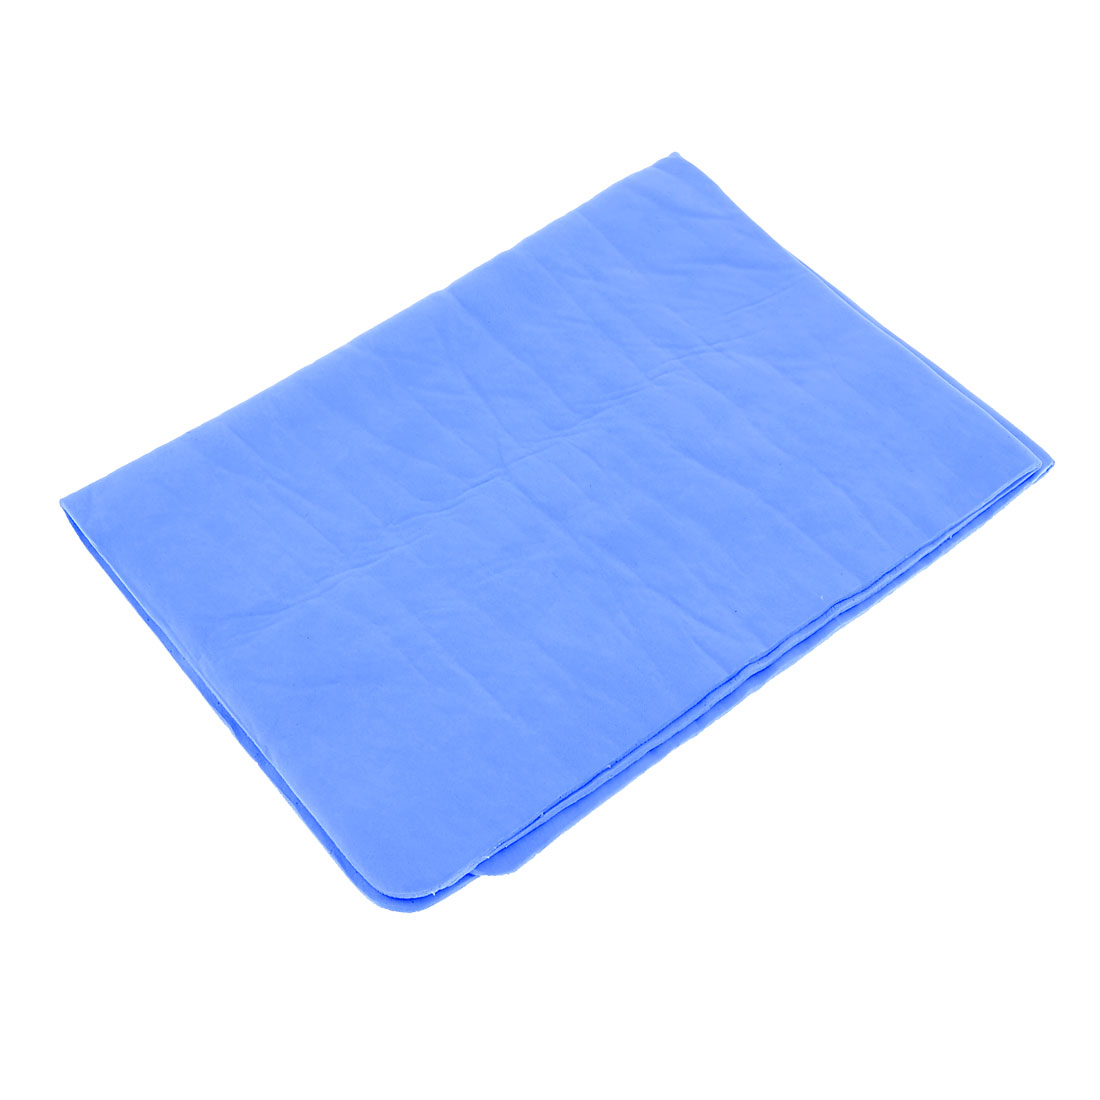 Car Auto Cleaning Tool 43cm x 32cm Synthetic Chamois Towel Cleaner Light Blue